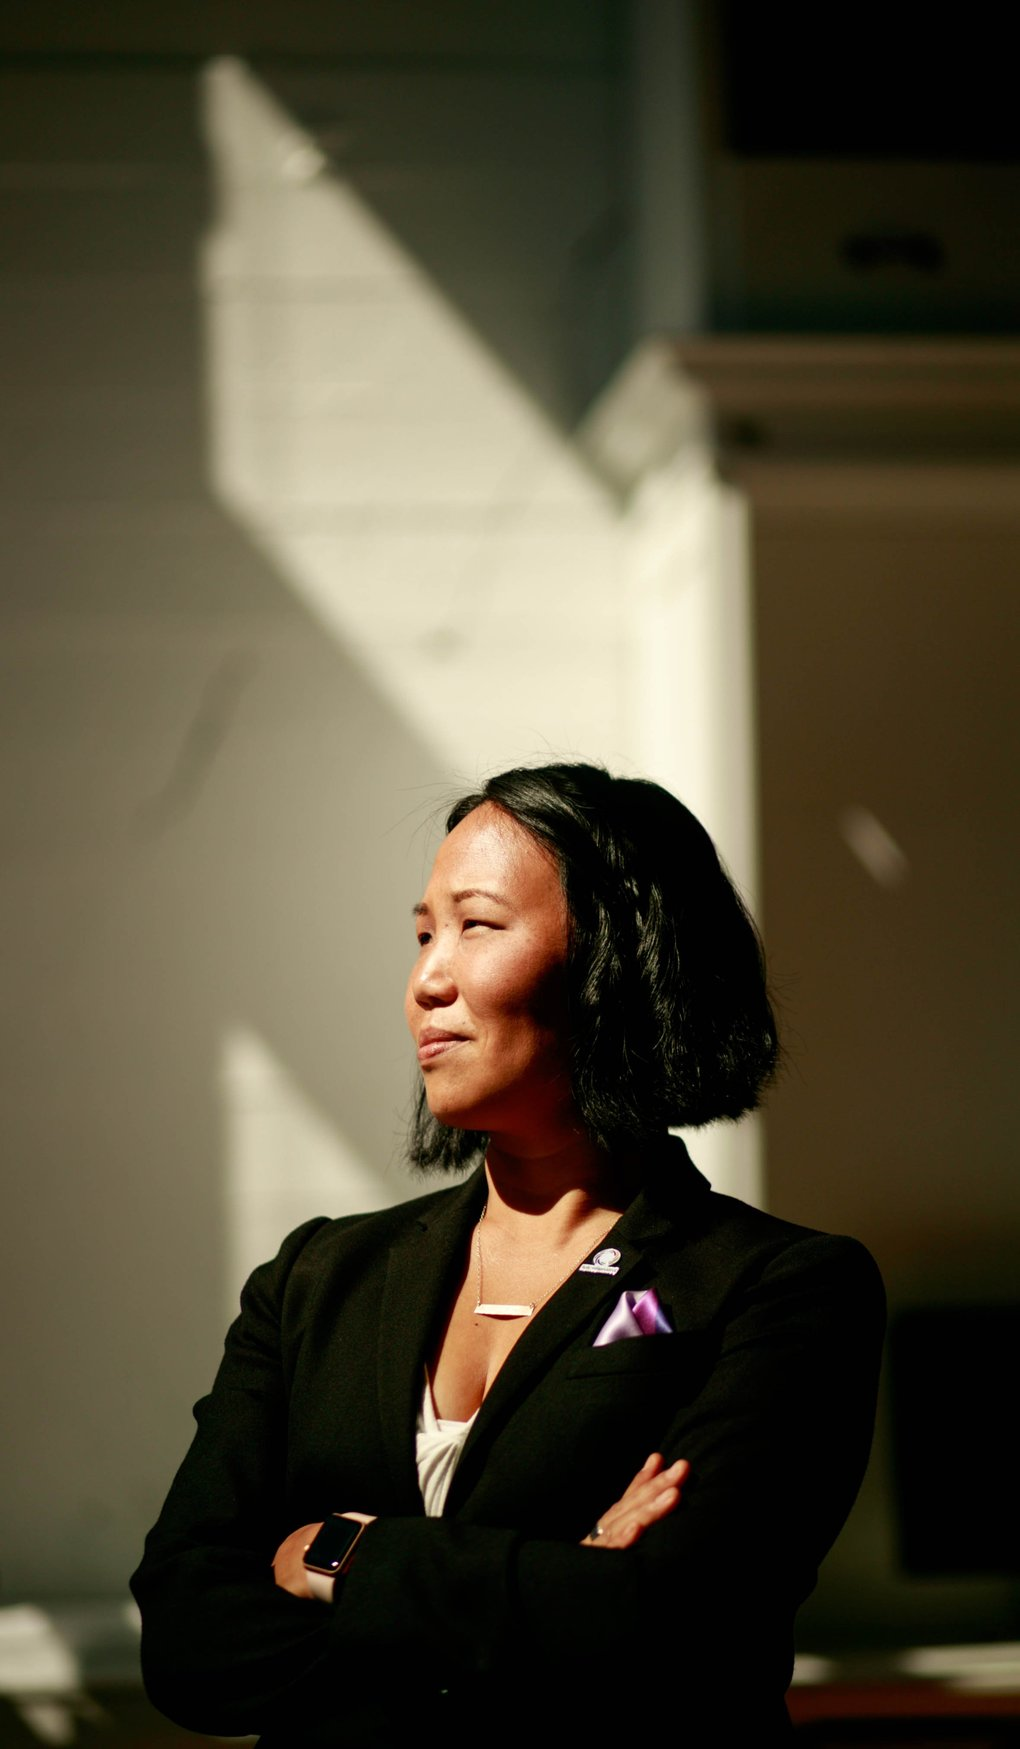 Laura Clise, founder and CEO of Intentionalist, is photographed at The Riveter on Capitol Hill. Her company is an online guide for consumers to make spending choices to build community and support businesses owned by people of color, women, immigrants, members of the LGBTQ community and veterans. (Erika Schultz/The Seattle Times)